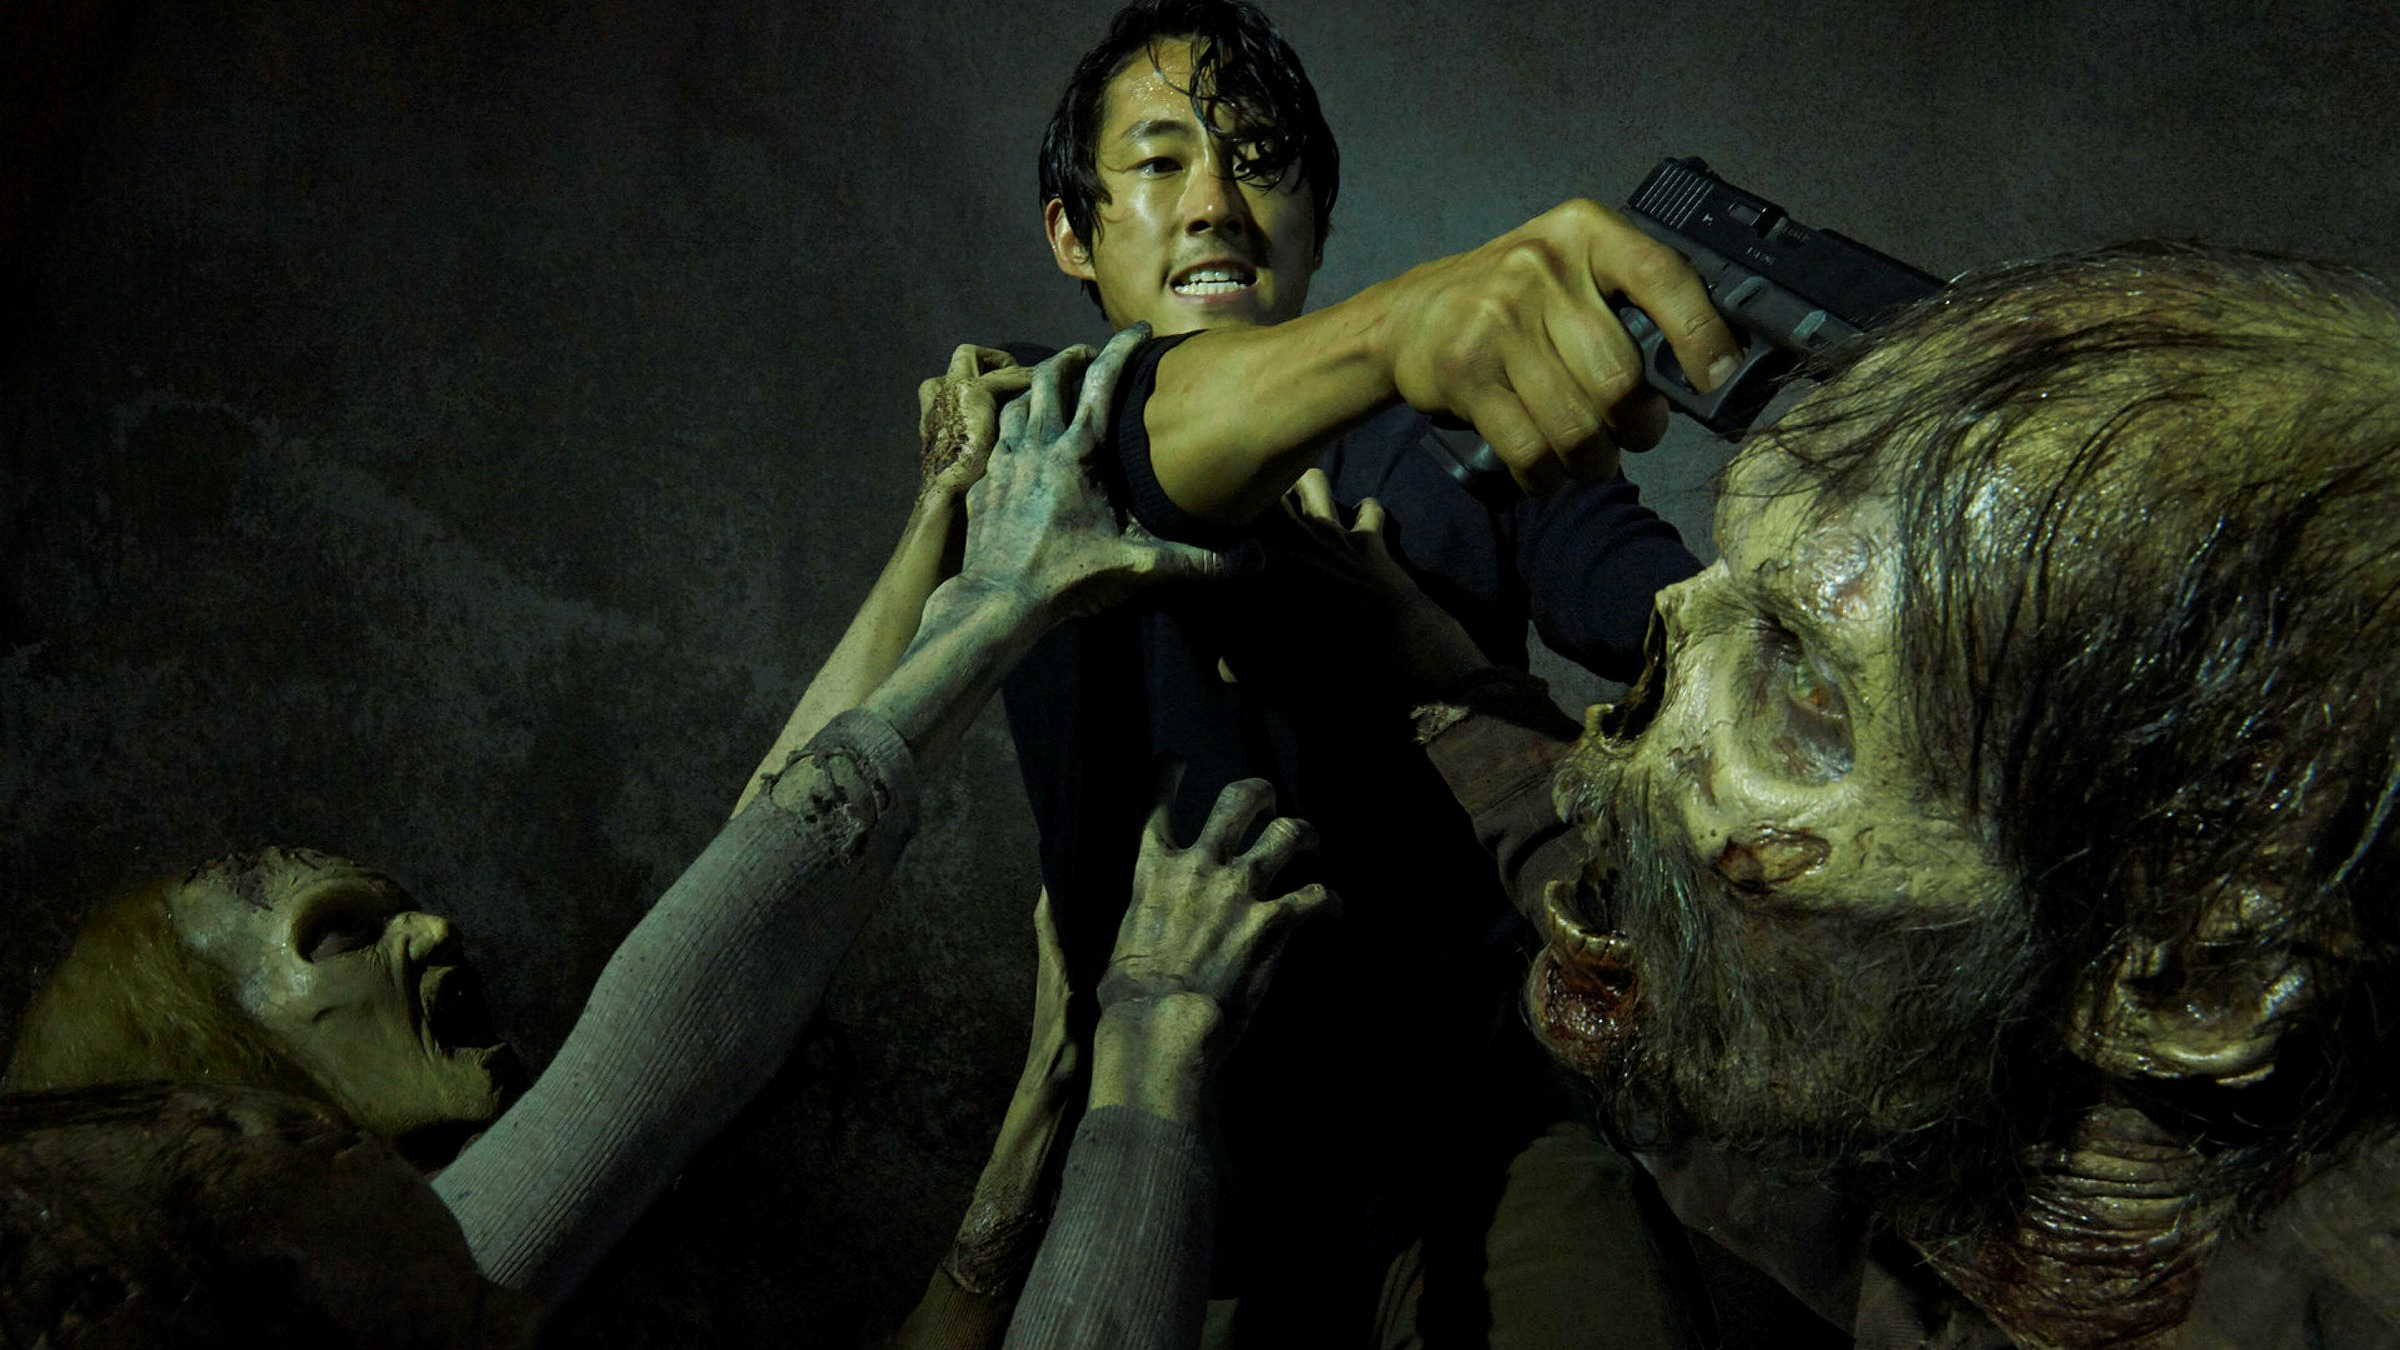 How The Zombie Apocalypse Can Help Prepare Us For Real Crises Financial Times